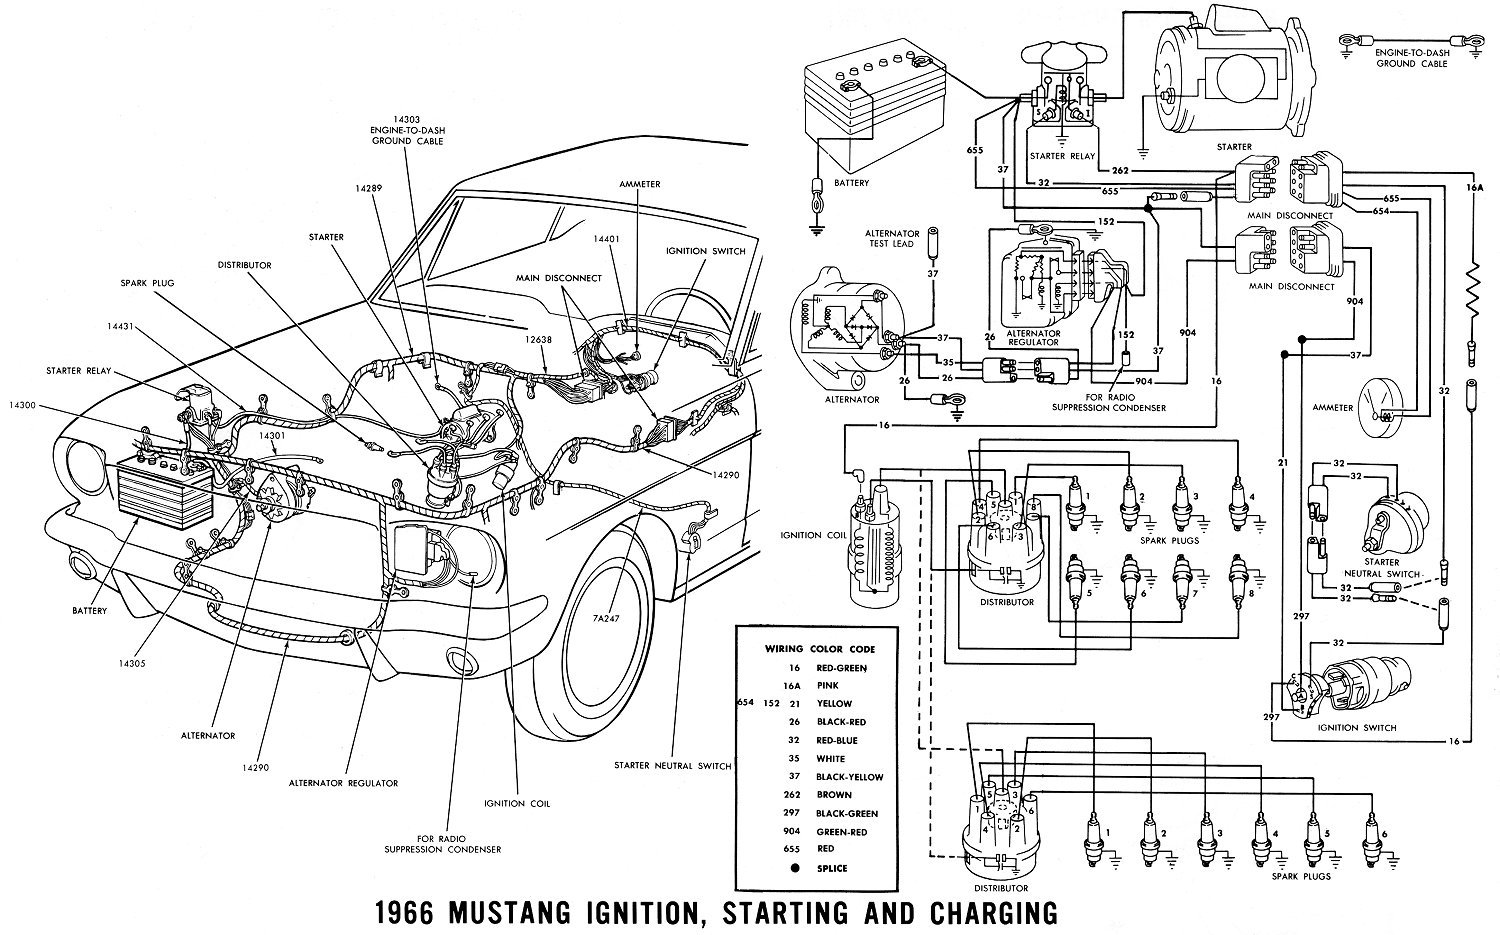 Jeep Tachometer Wiring Diagram 1976 Schematics Data Diagrams Cj5 Engine 1966 Mustang Ignition Switch What Pins Are Ford Forum 1977